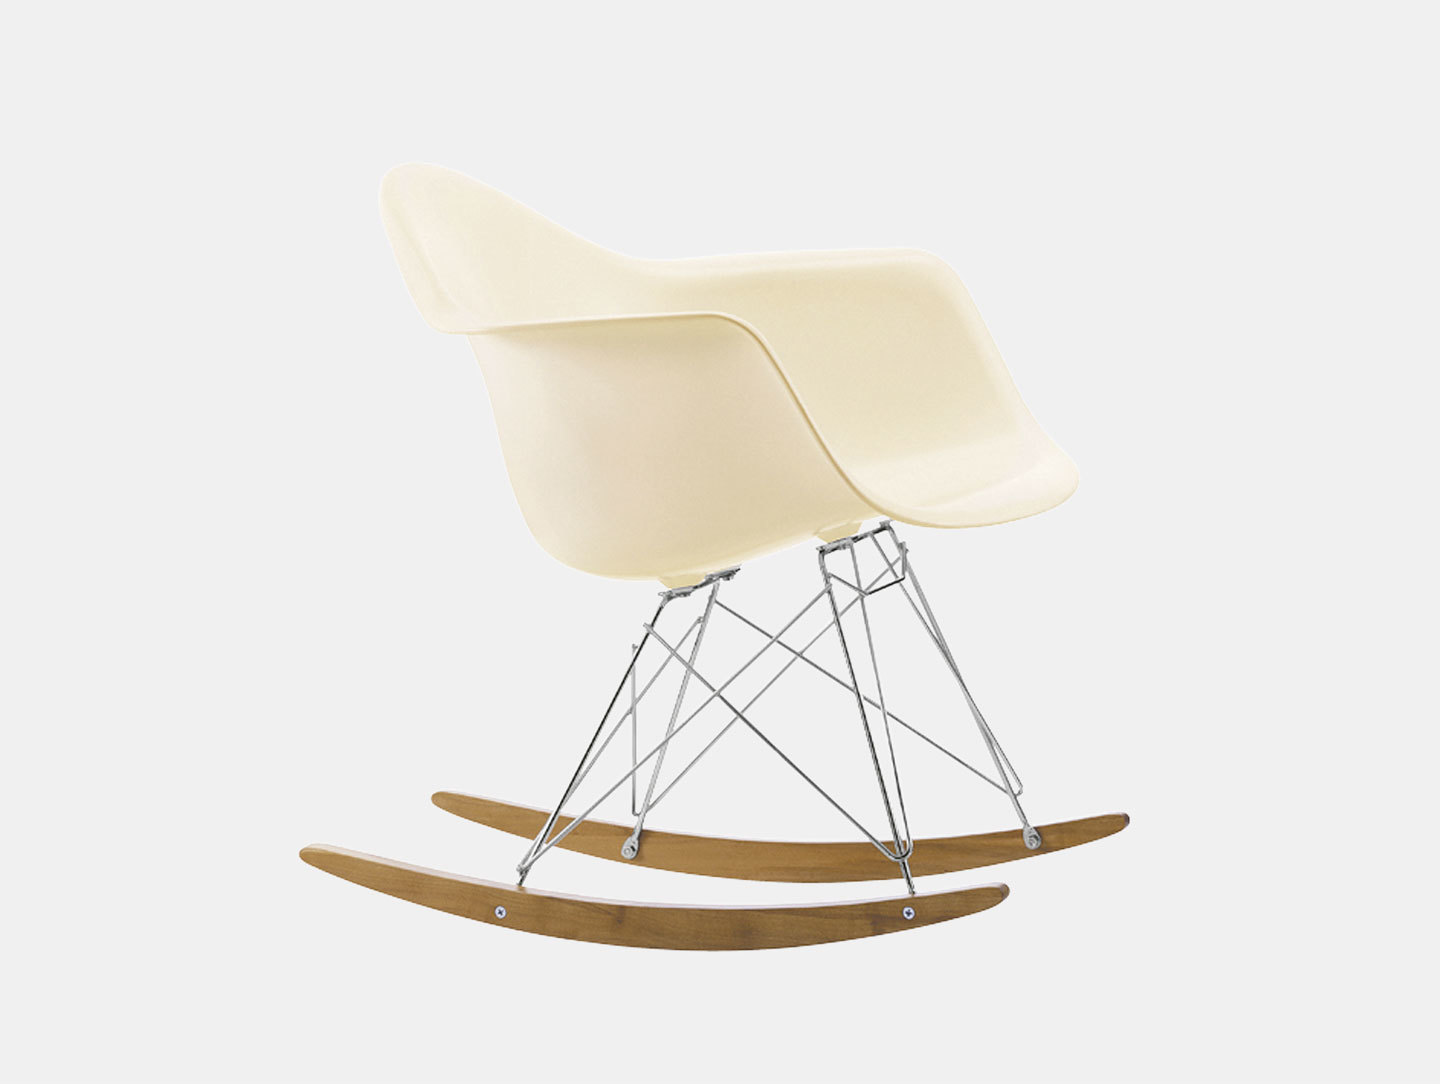 Eames RAR Rocking Chair image 3